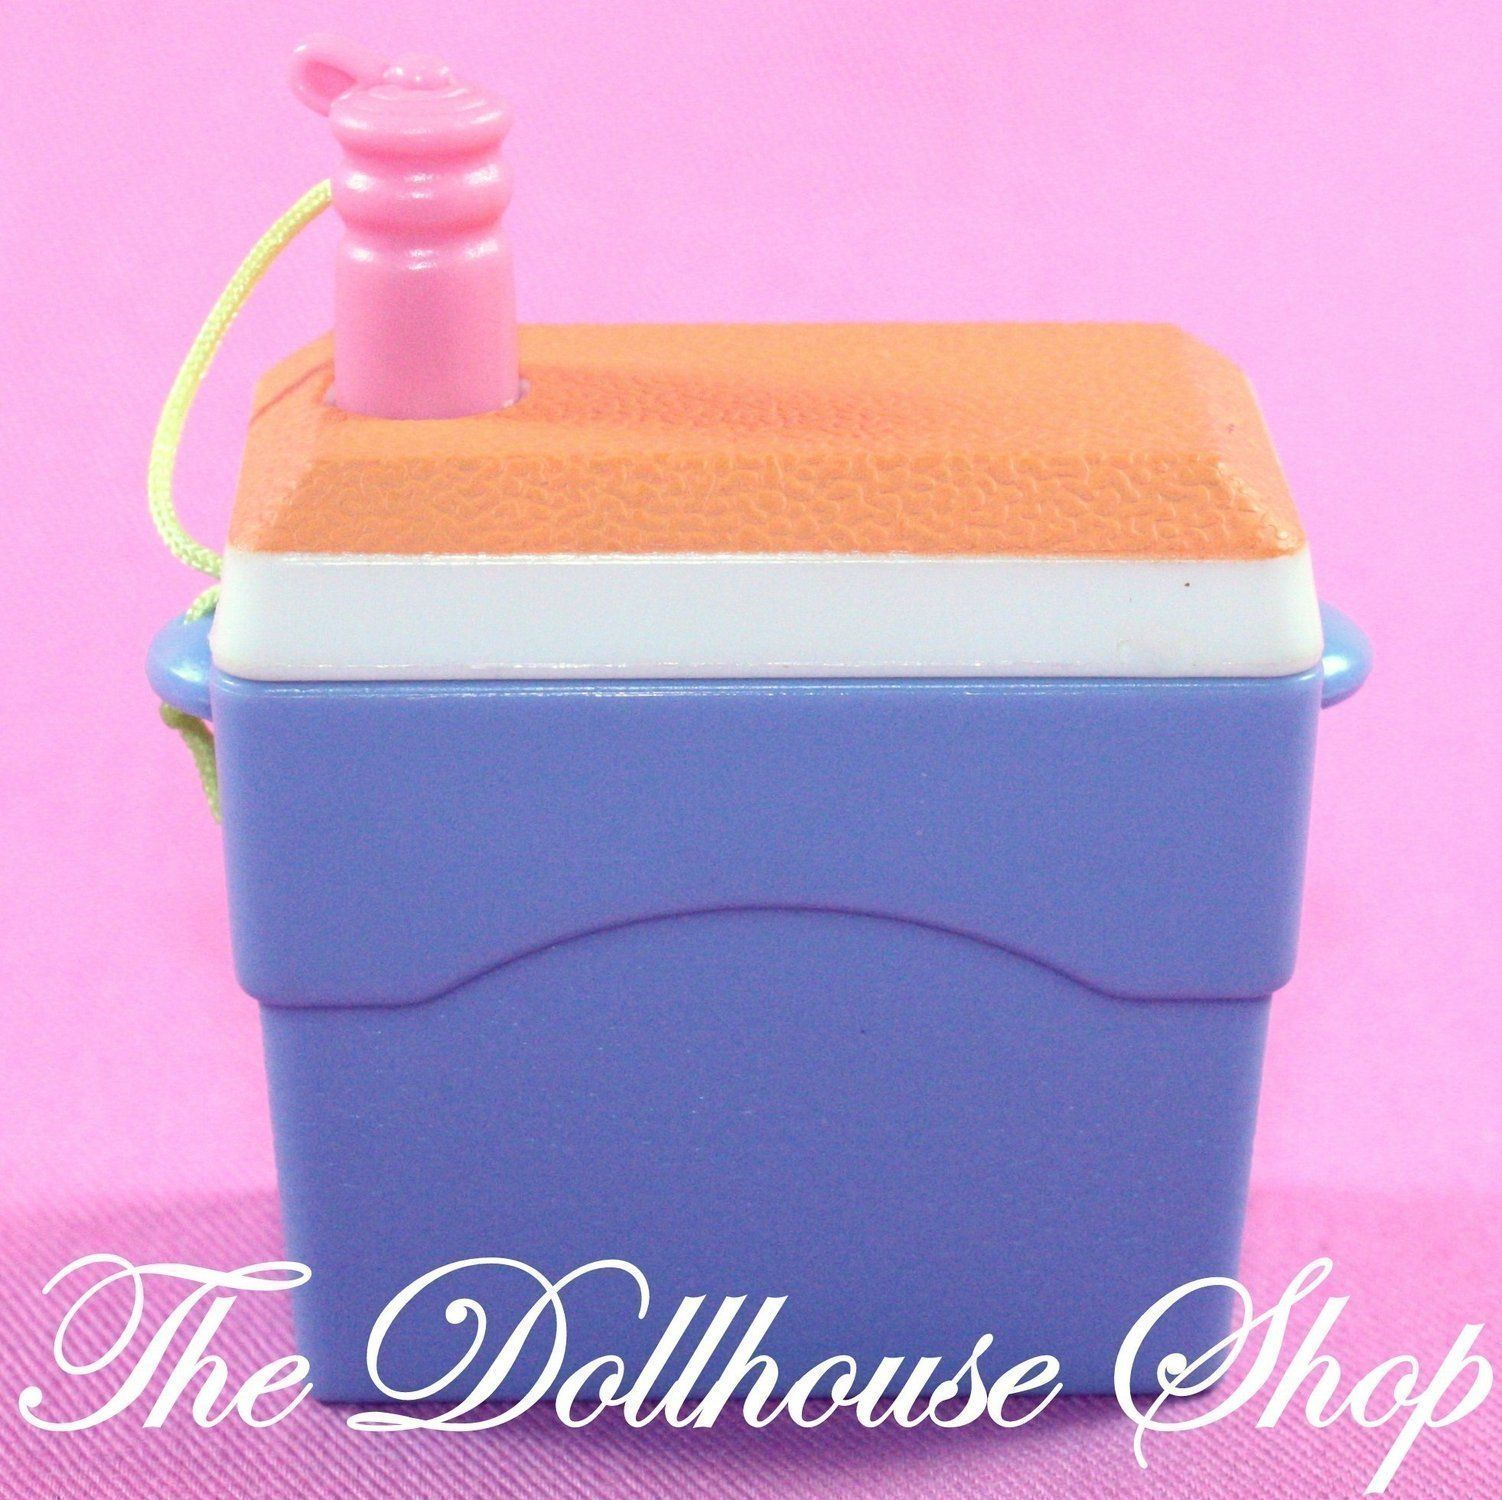 Fisher Price Loving Family Dollhouse Camping Drinks Cooler Ice Chest Picnic Food #familypicnicfoods